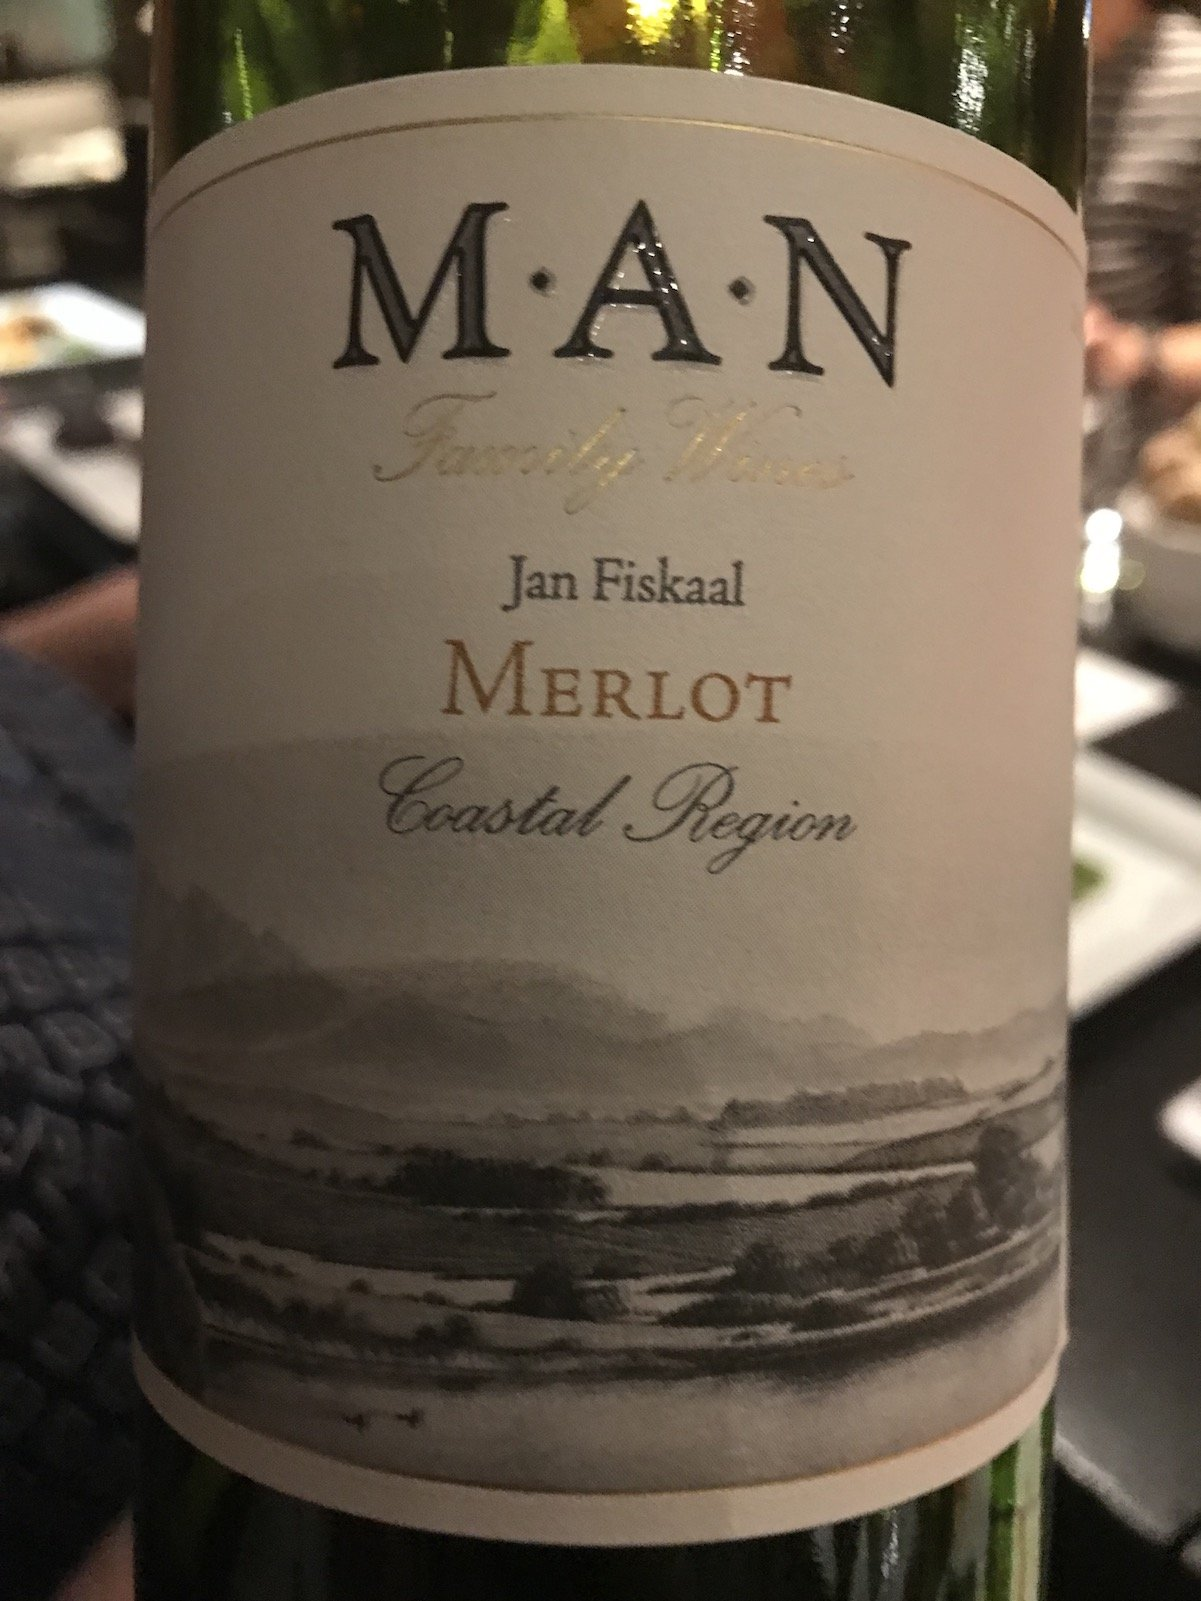 Jan Fiskaal Merlot | MAN Family Wines